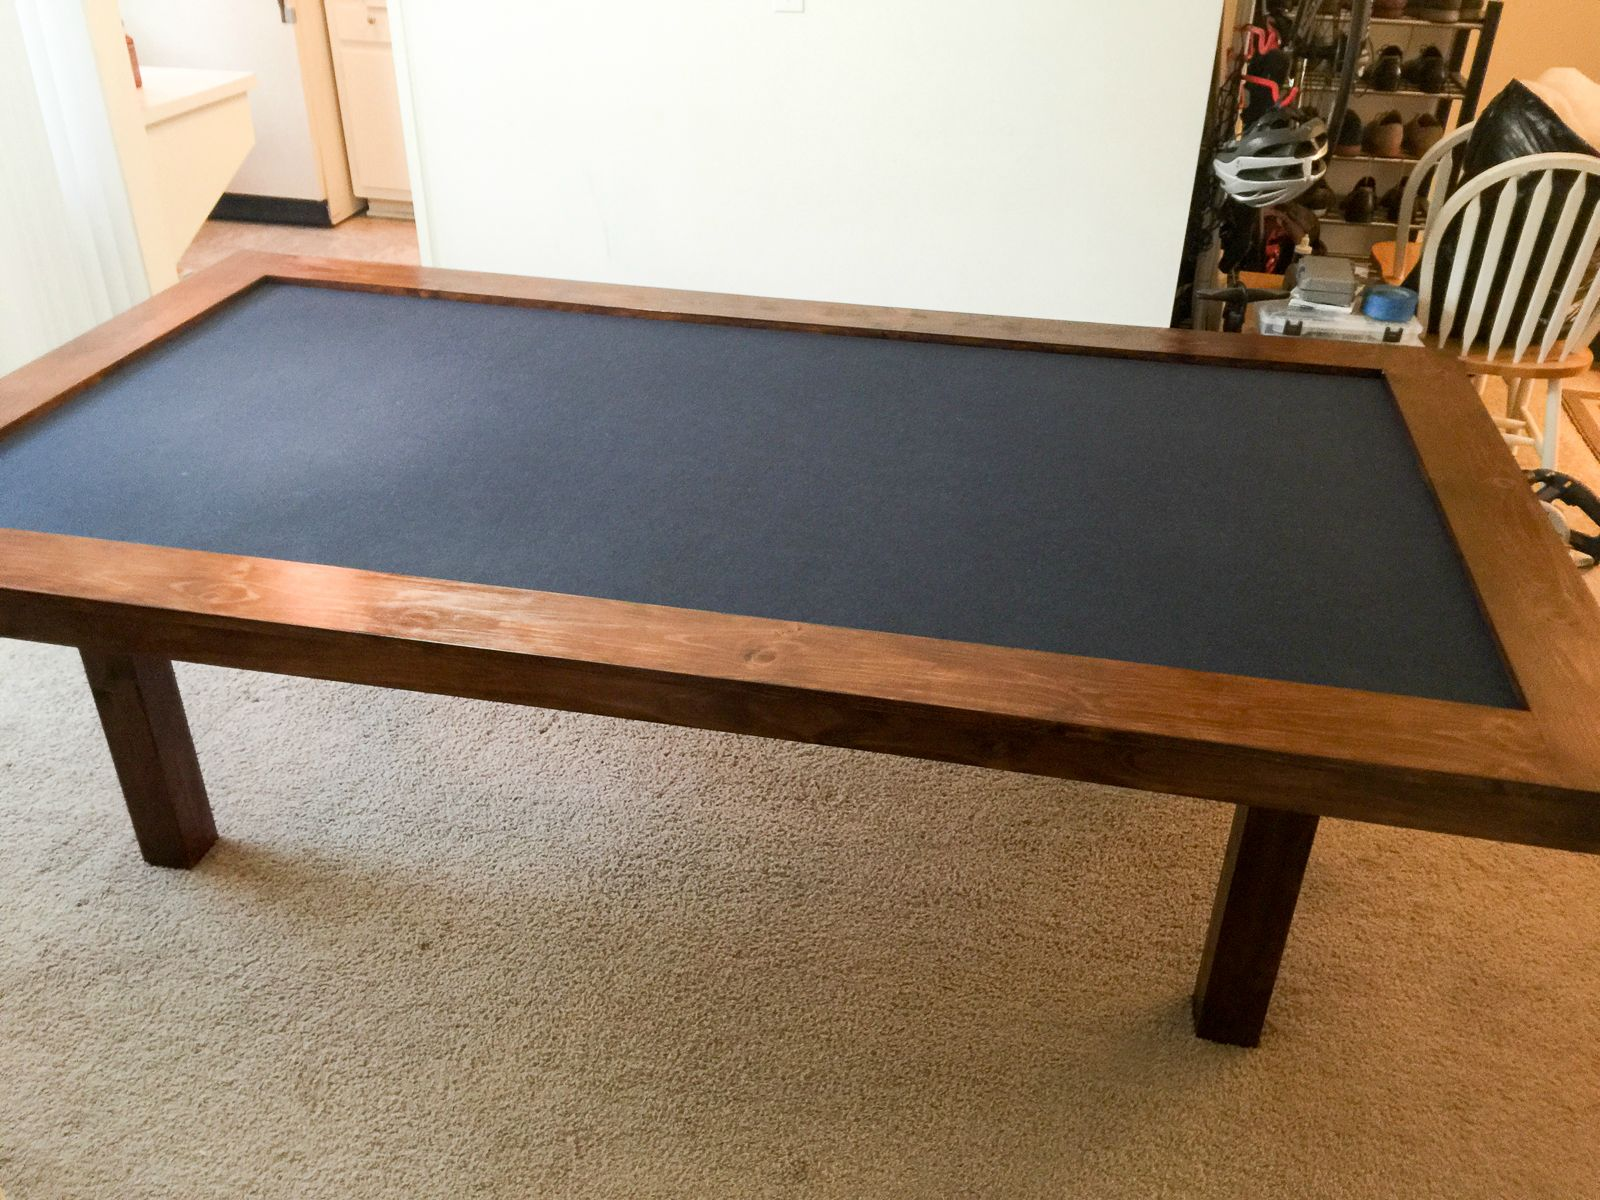 Sub $400 Dining Room / Gaming Table